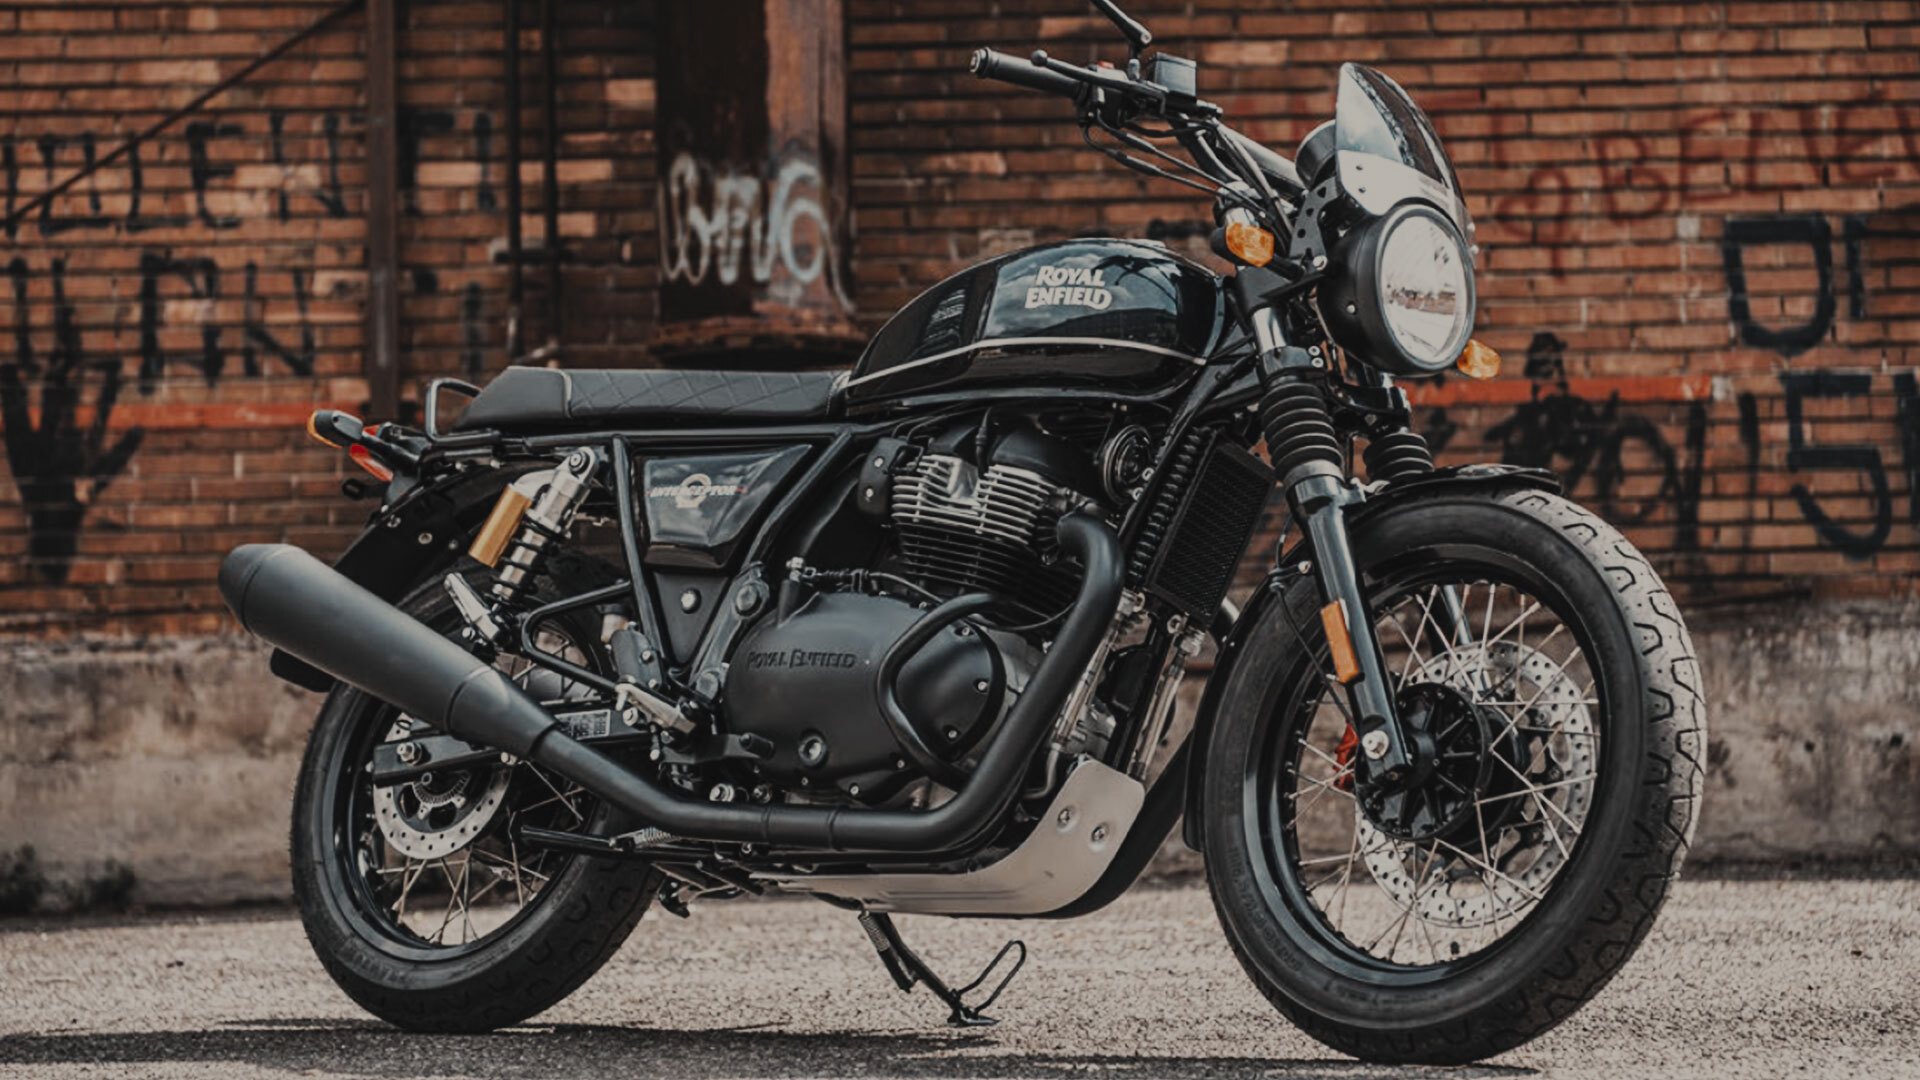 Royal enfield limited edition pogliani